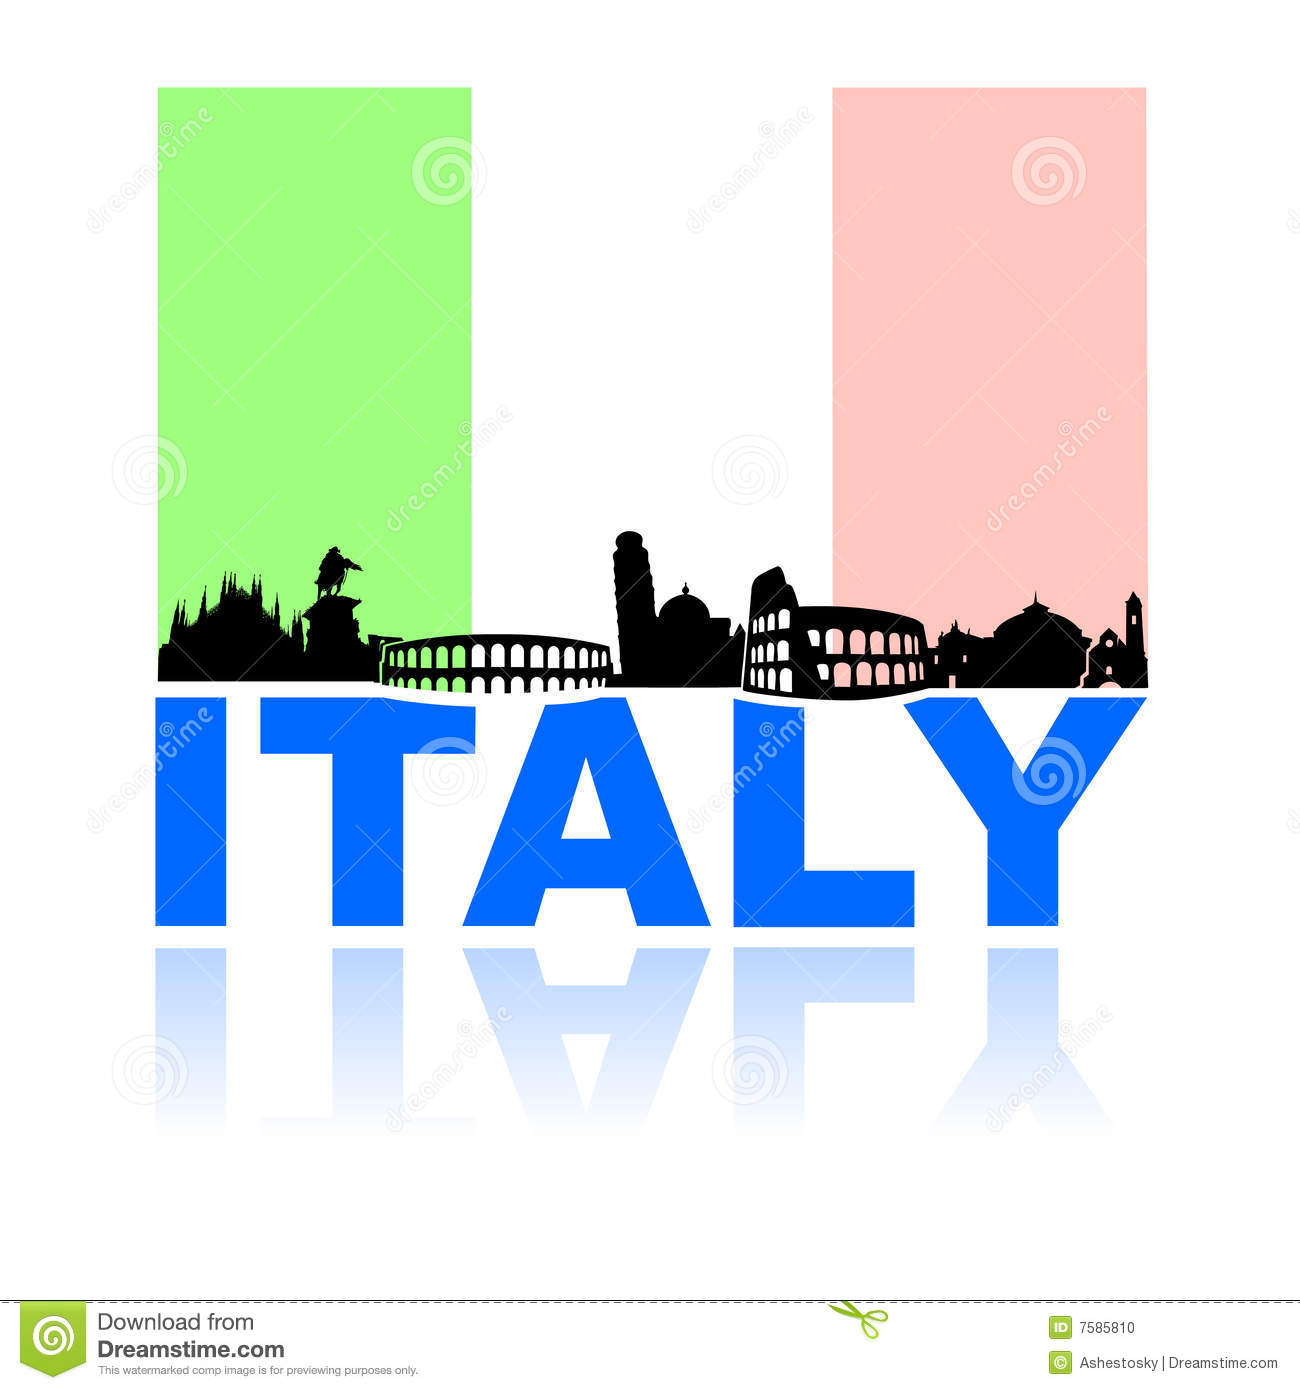 Tour of italy clipart.